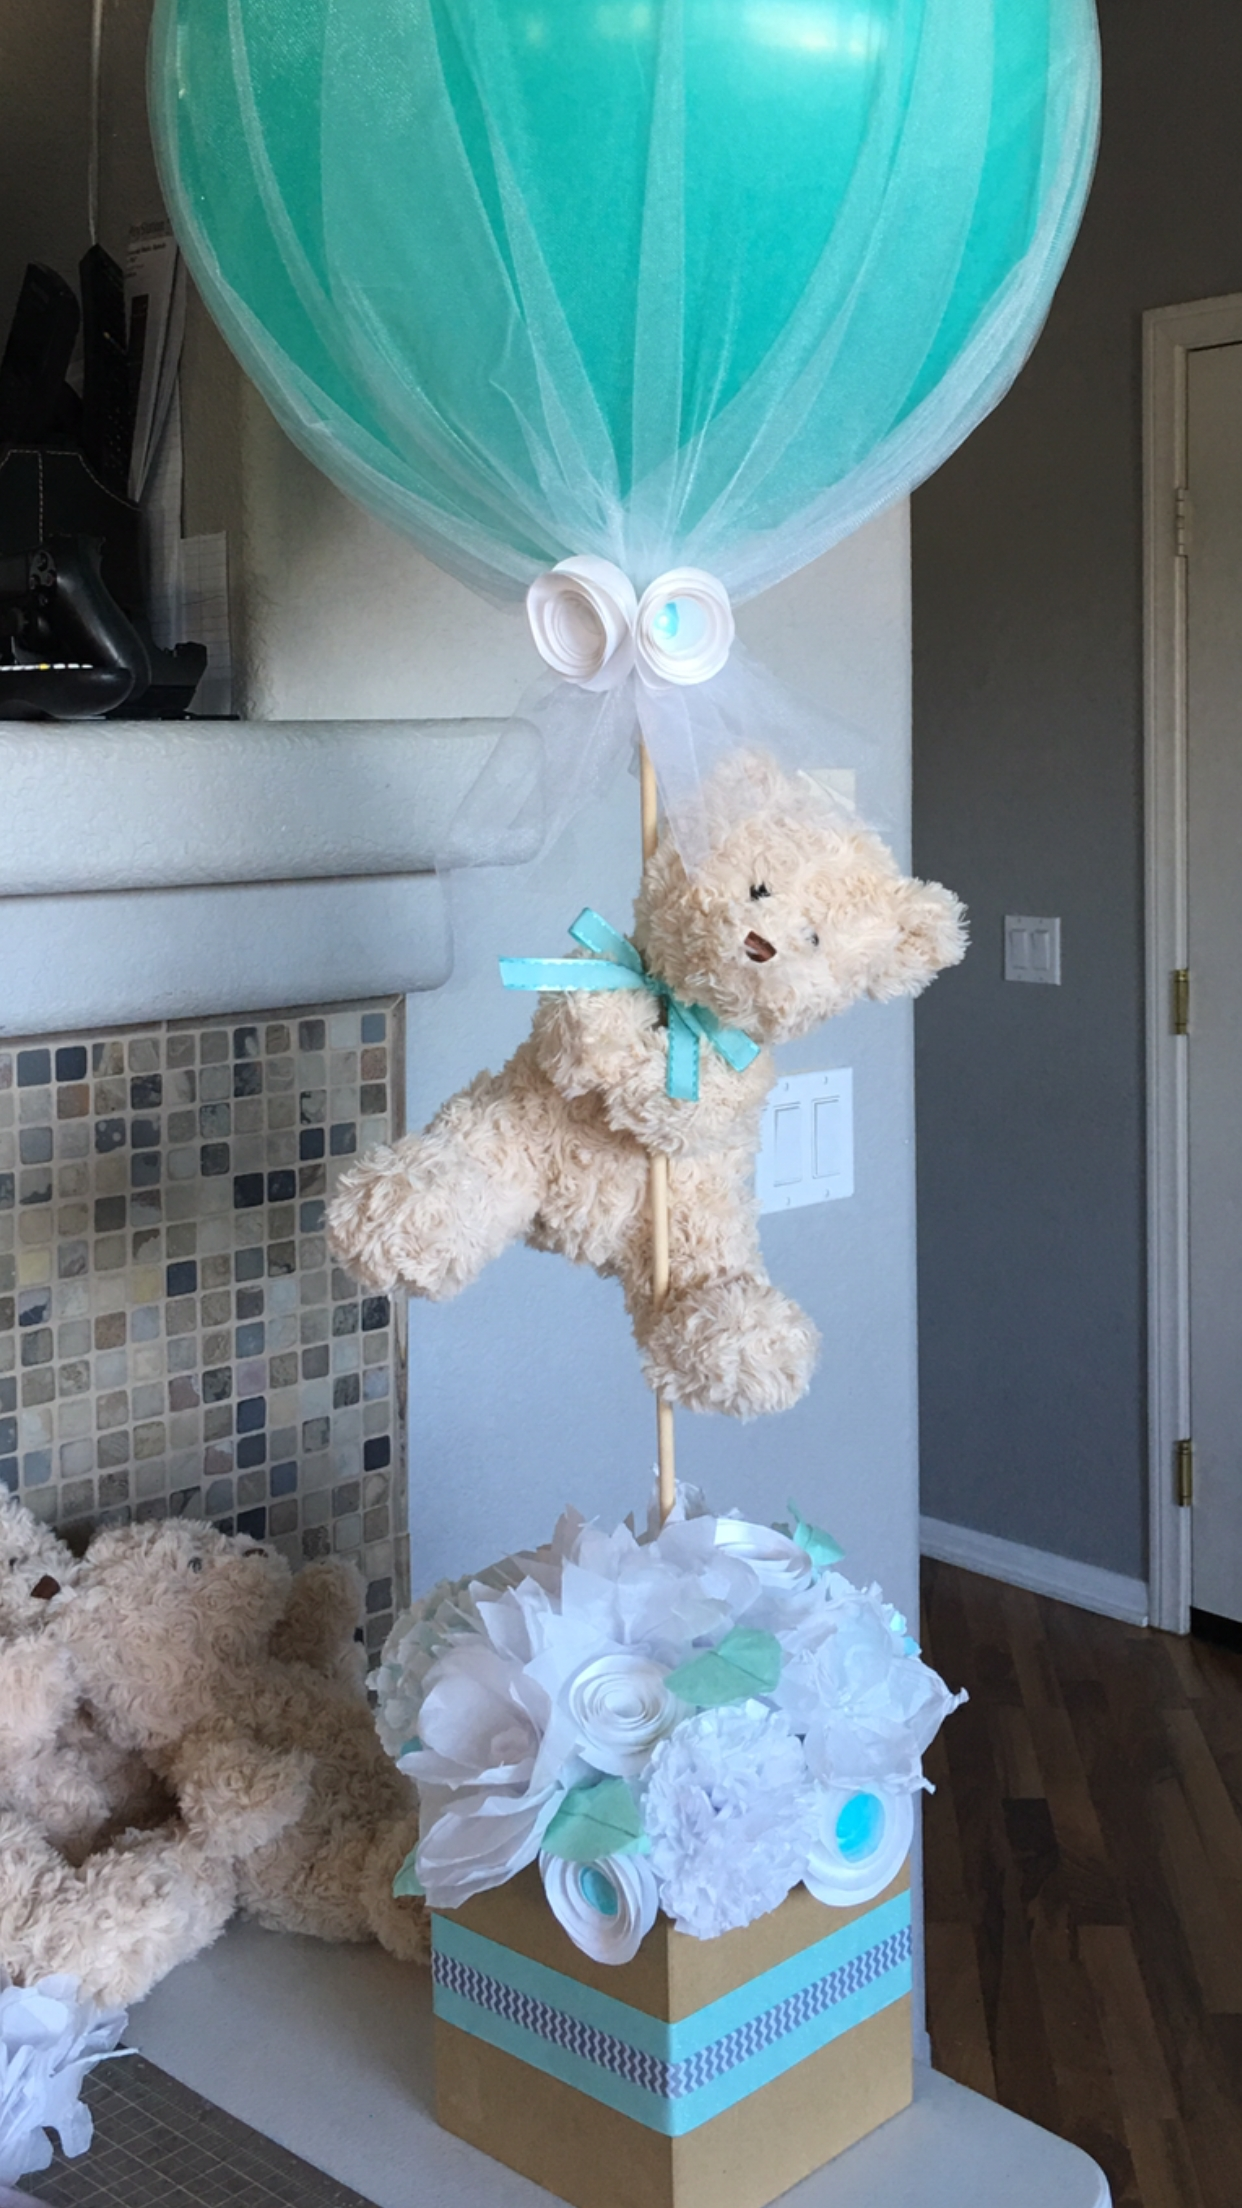 10 Unique Baby Shower Decoration Ideas For Boy 10 gender reveal party food ideas for your family babies 8 2021